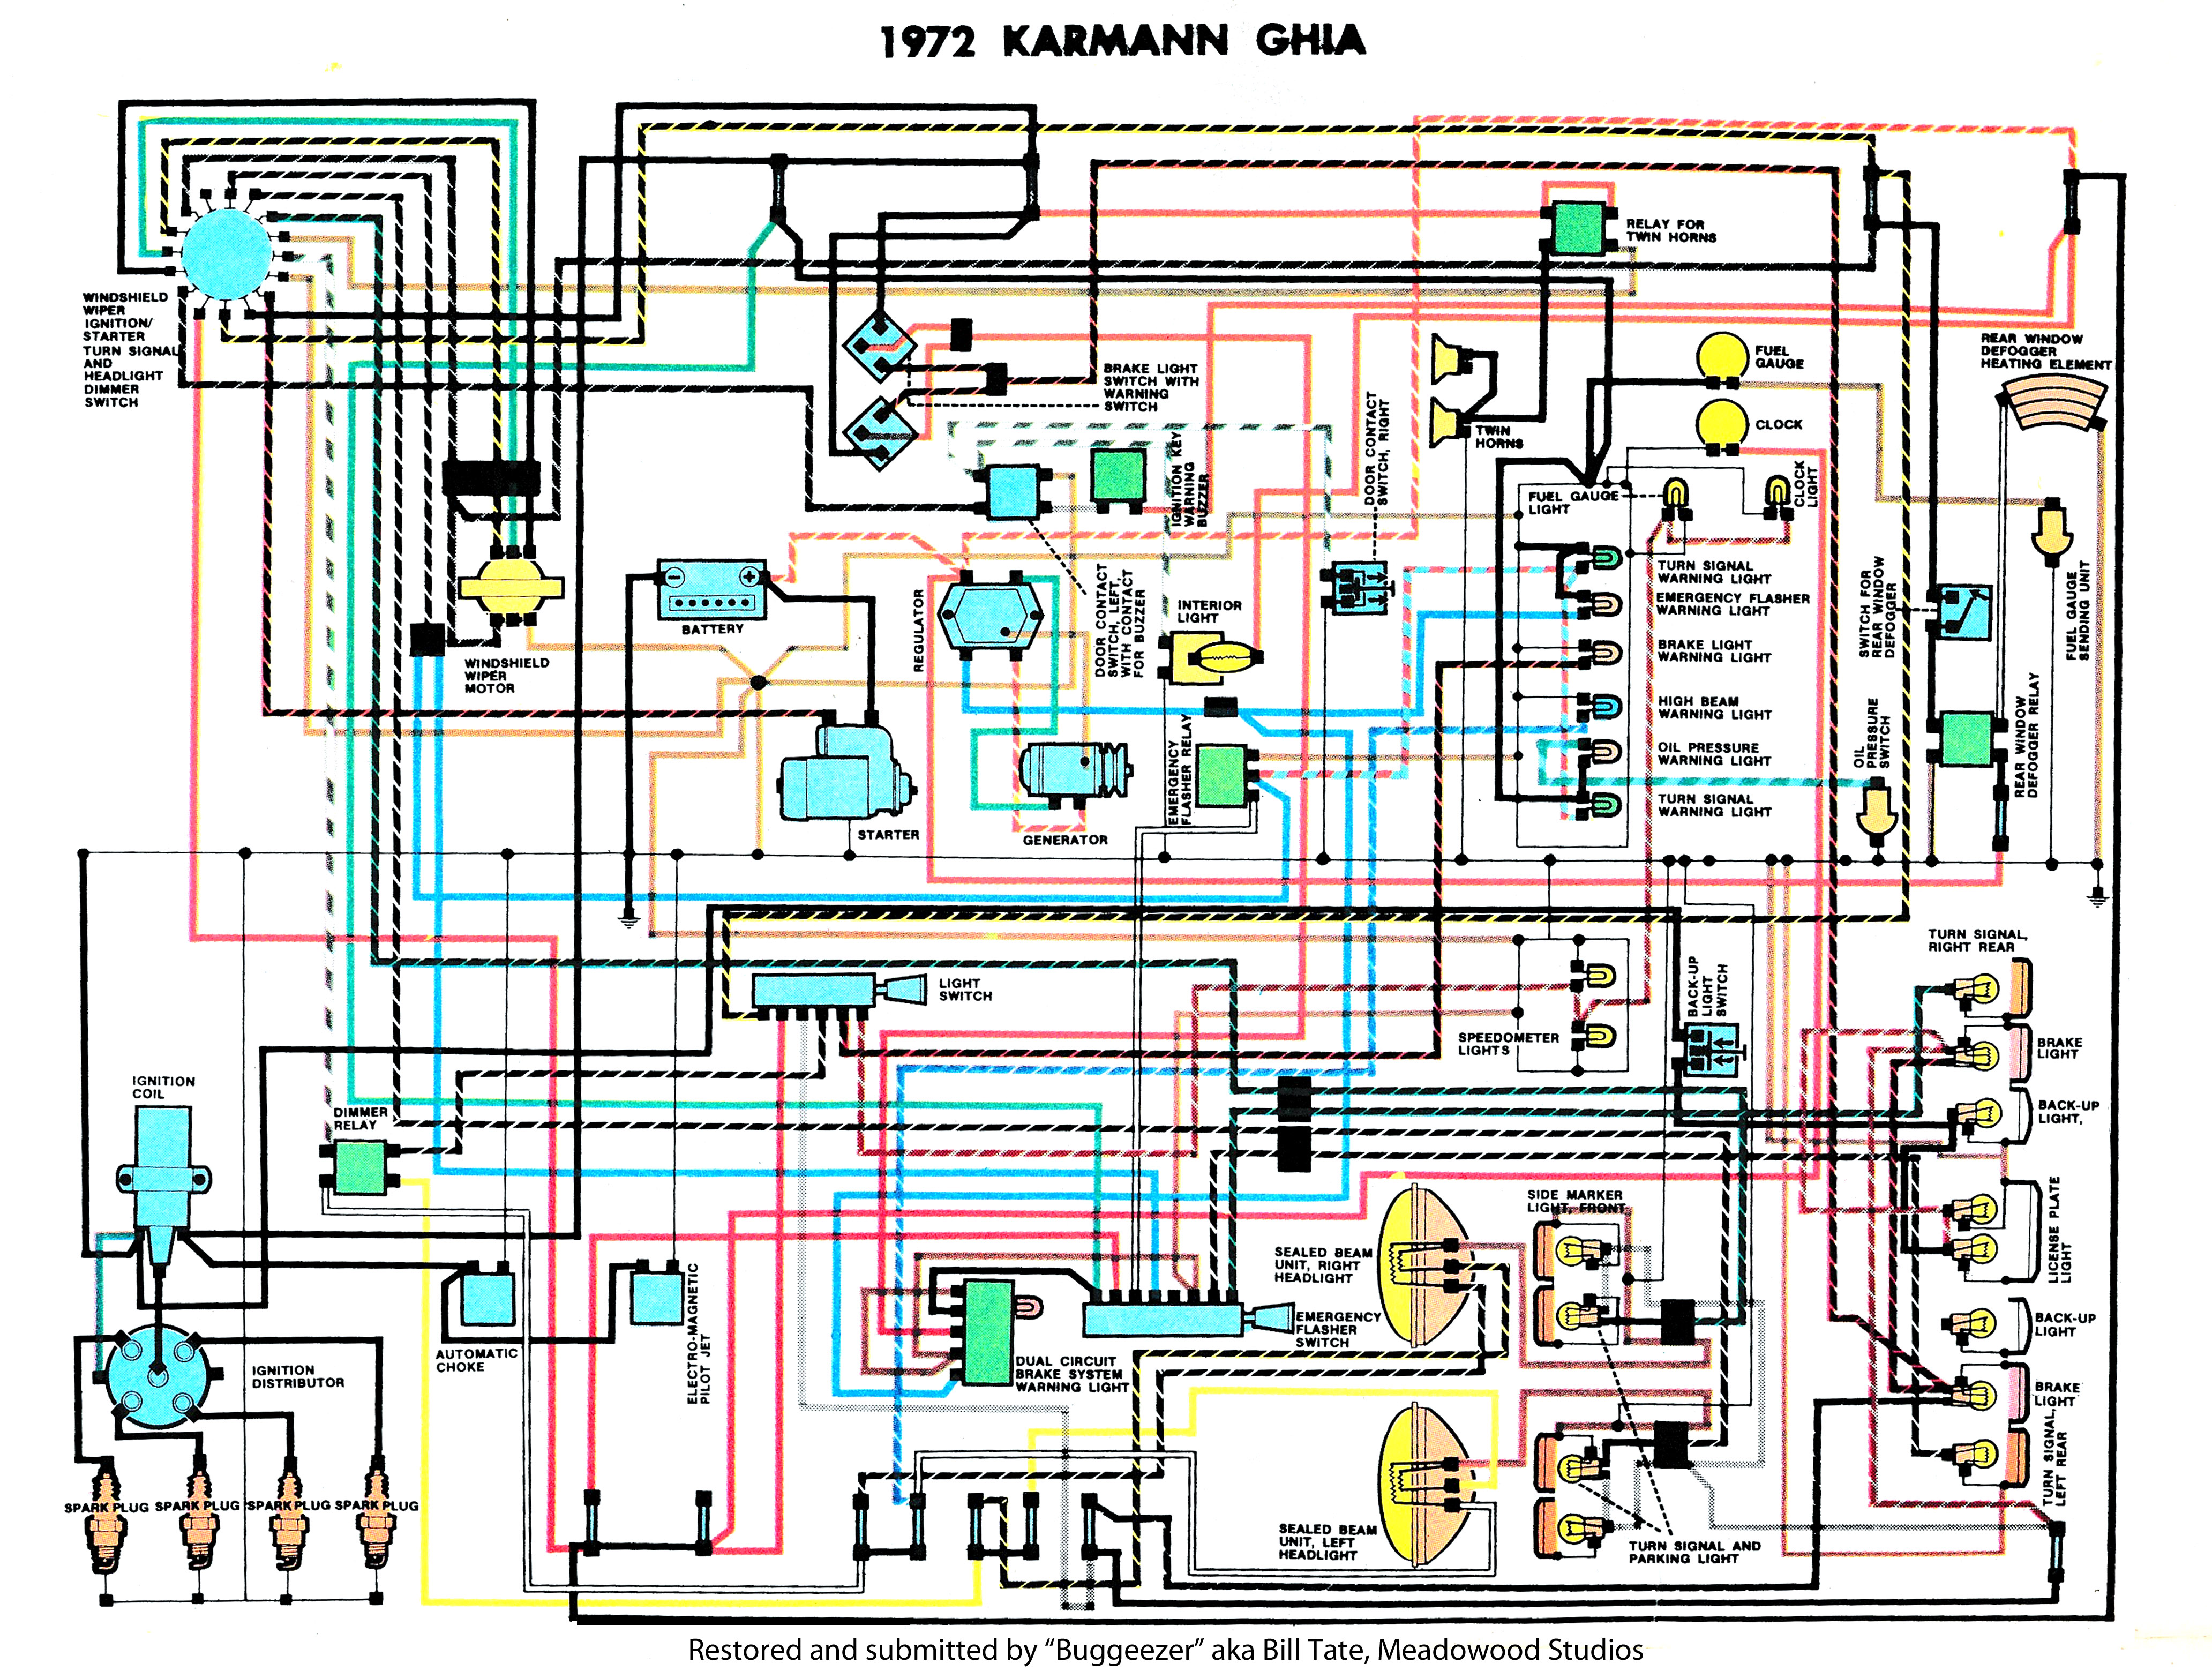 Ghia_1972_Clymers thesamba com karmann ghia wiring diagrams 1960 corvette wiring diagram at fashall.co